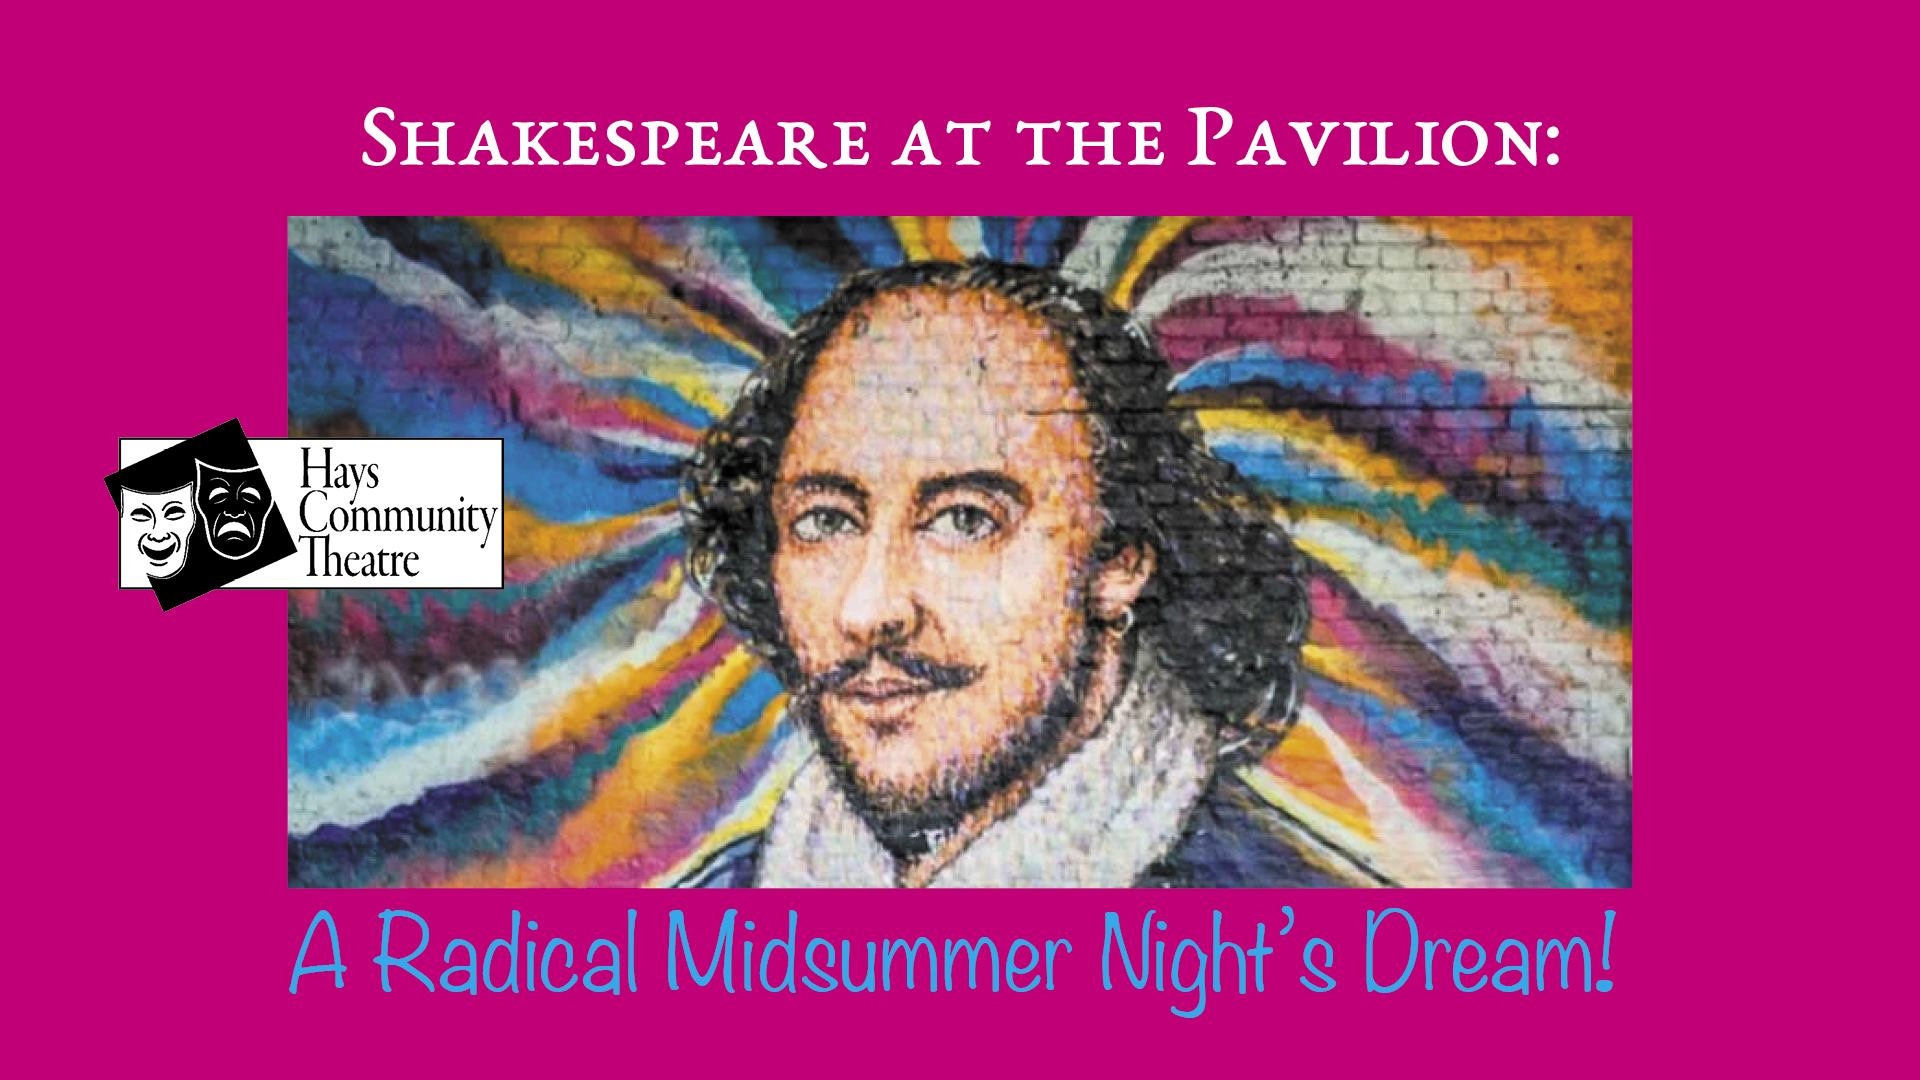 Shakespeare at the Pavilion